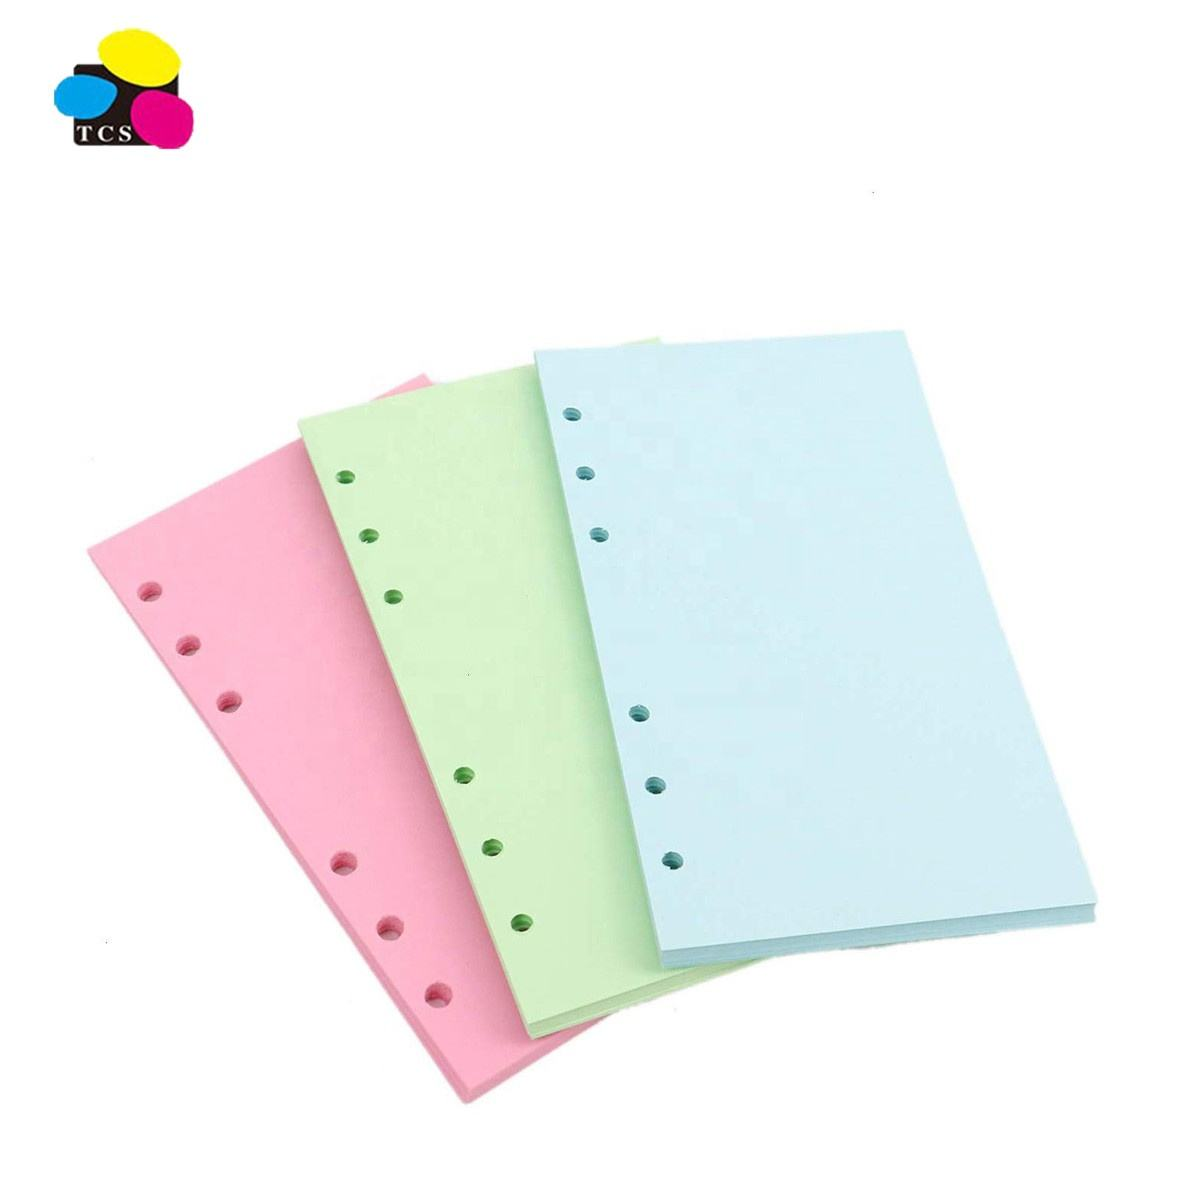 Ins Customizesd 17 x 9.7 cm 240 pages Red/Green/Blue A6 Binder Planner Refills Loose Leaf Filling Paper